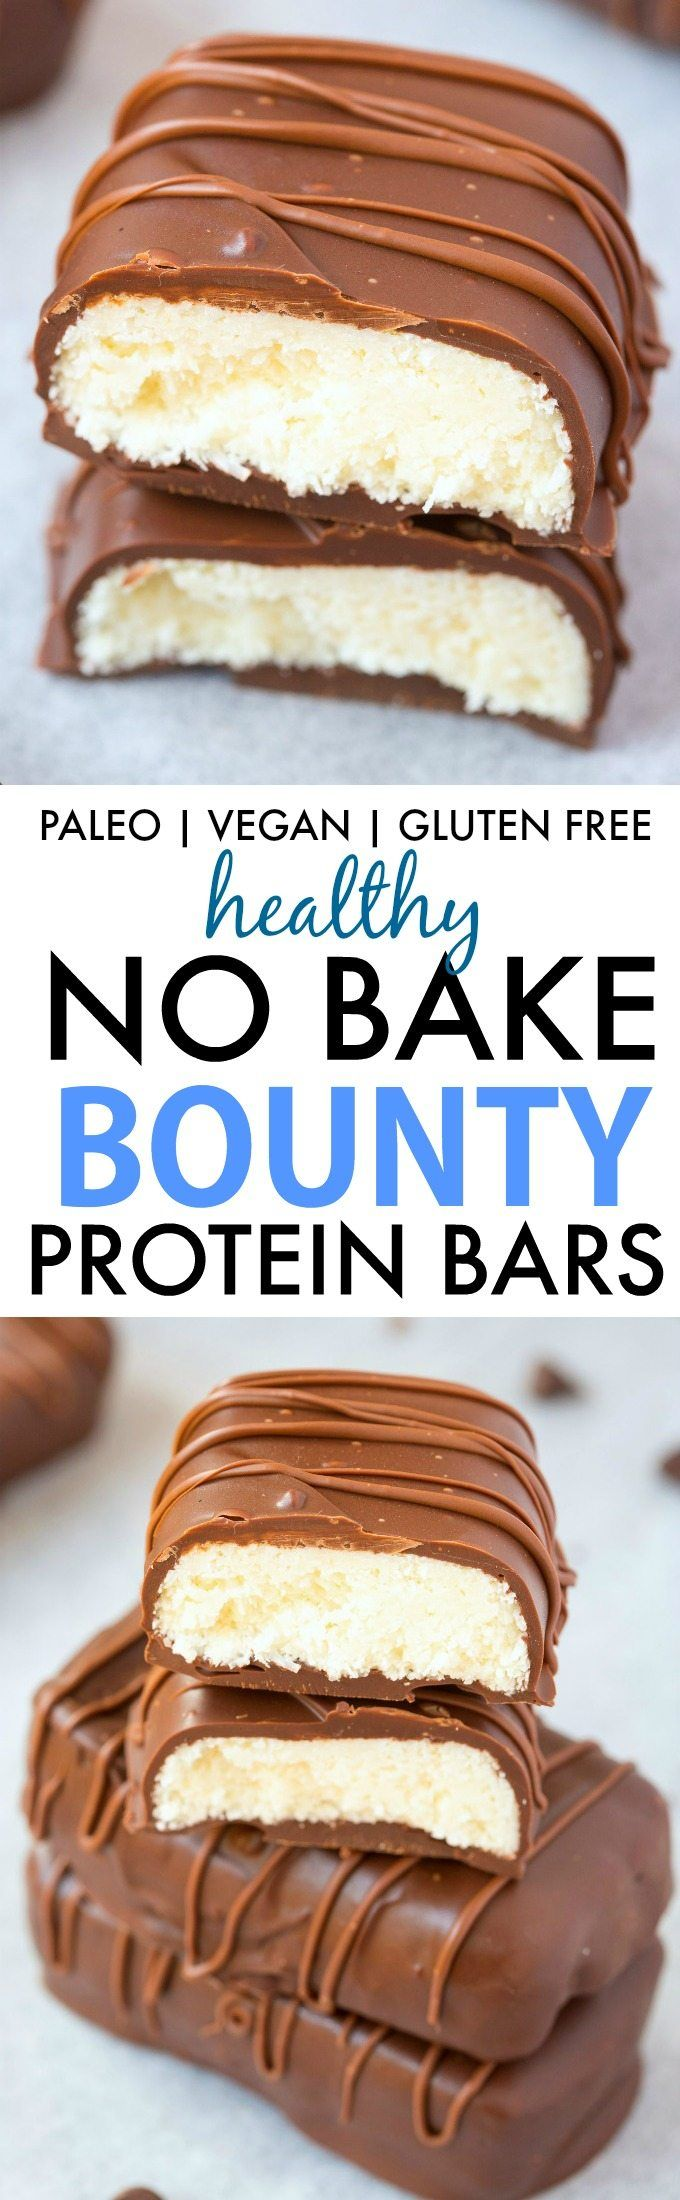 Homemade No Bake Bounty Protein Bars (Paleo, Vegan, Gluten Free)- Easy, no cook snack bars which taste like the original bounty or mound chocolate candy bar